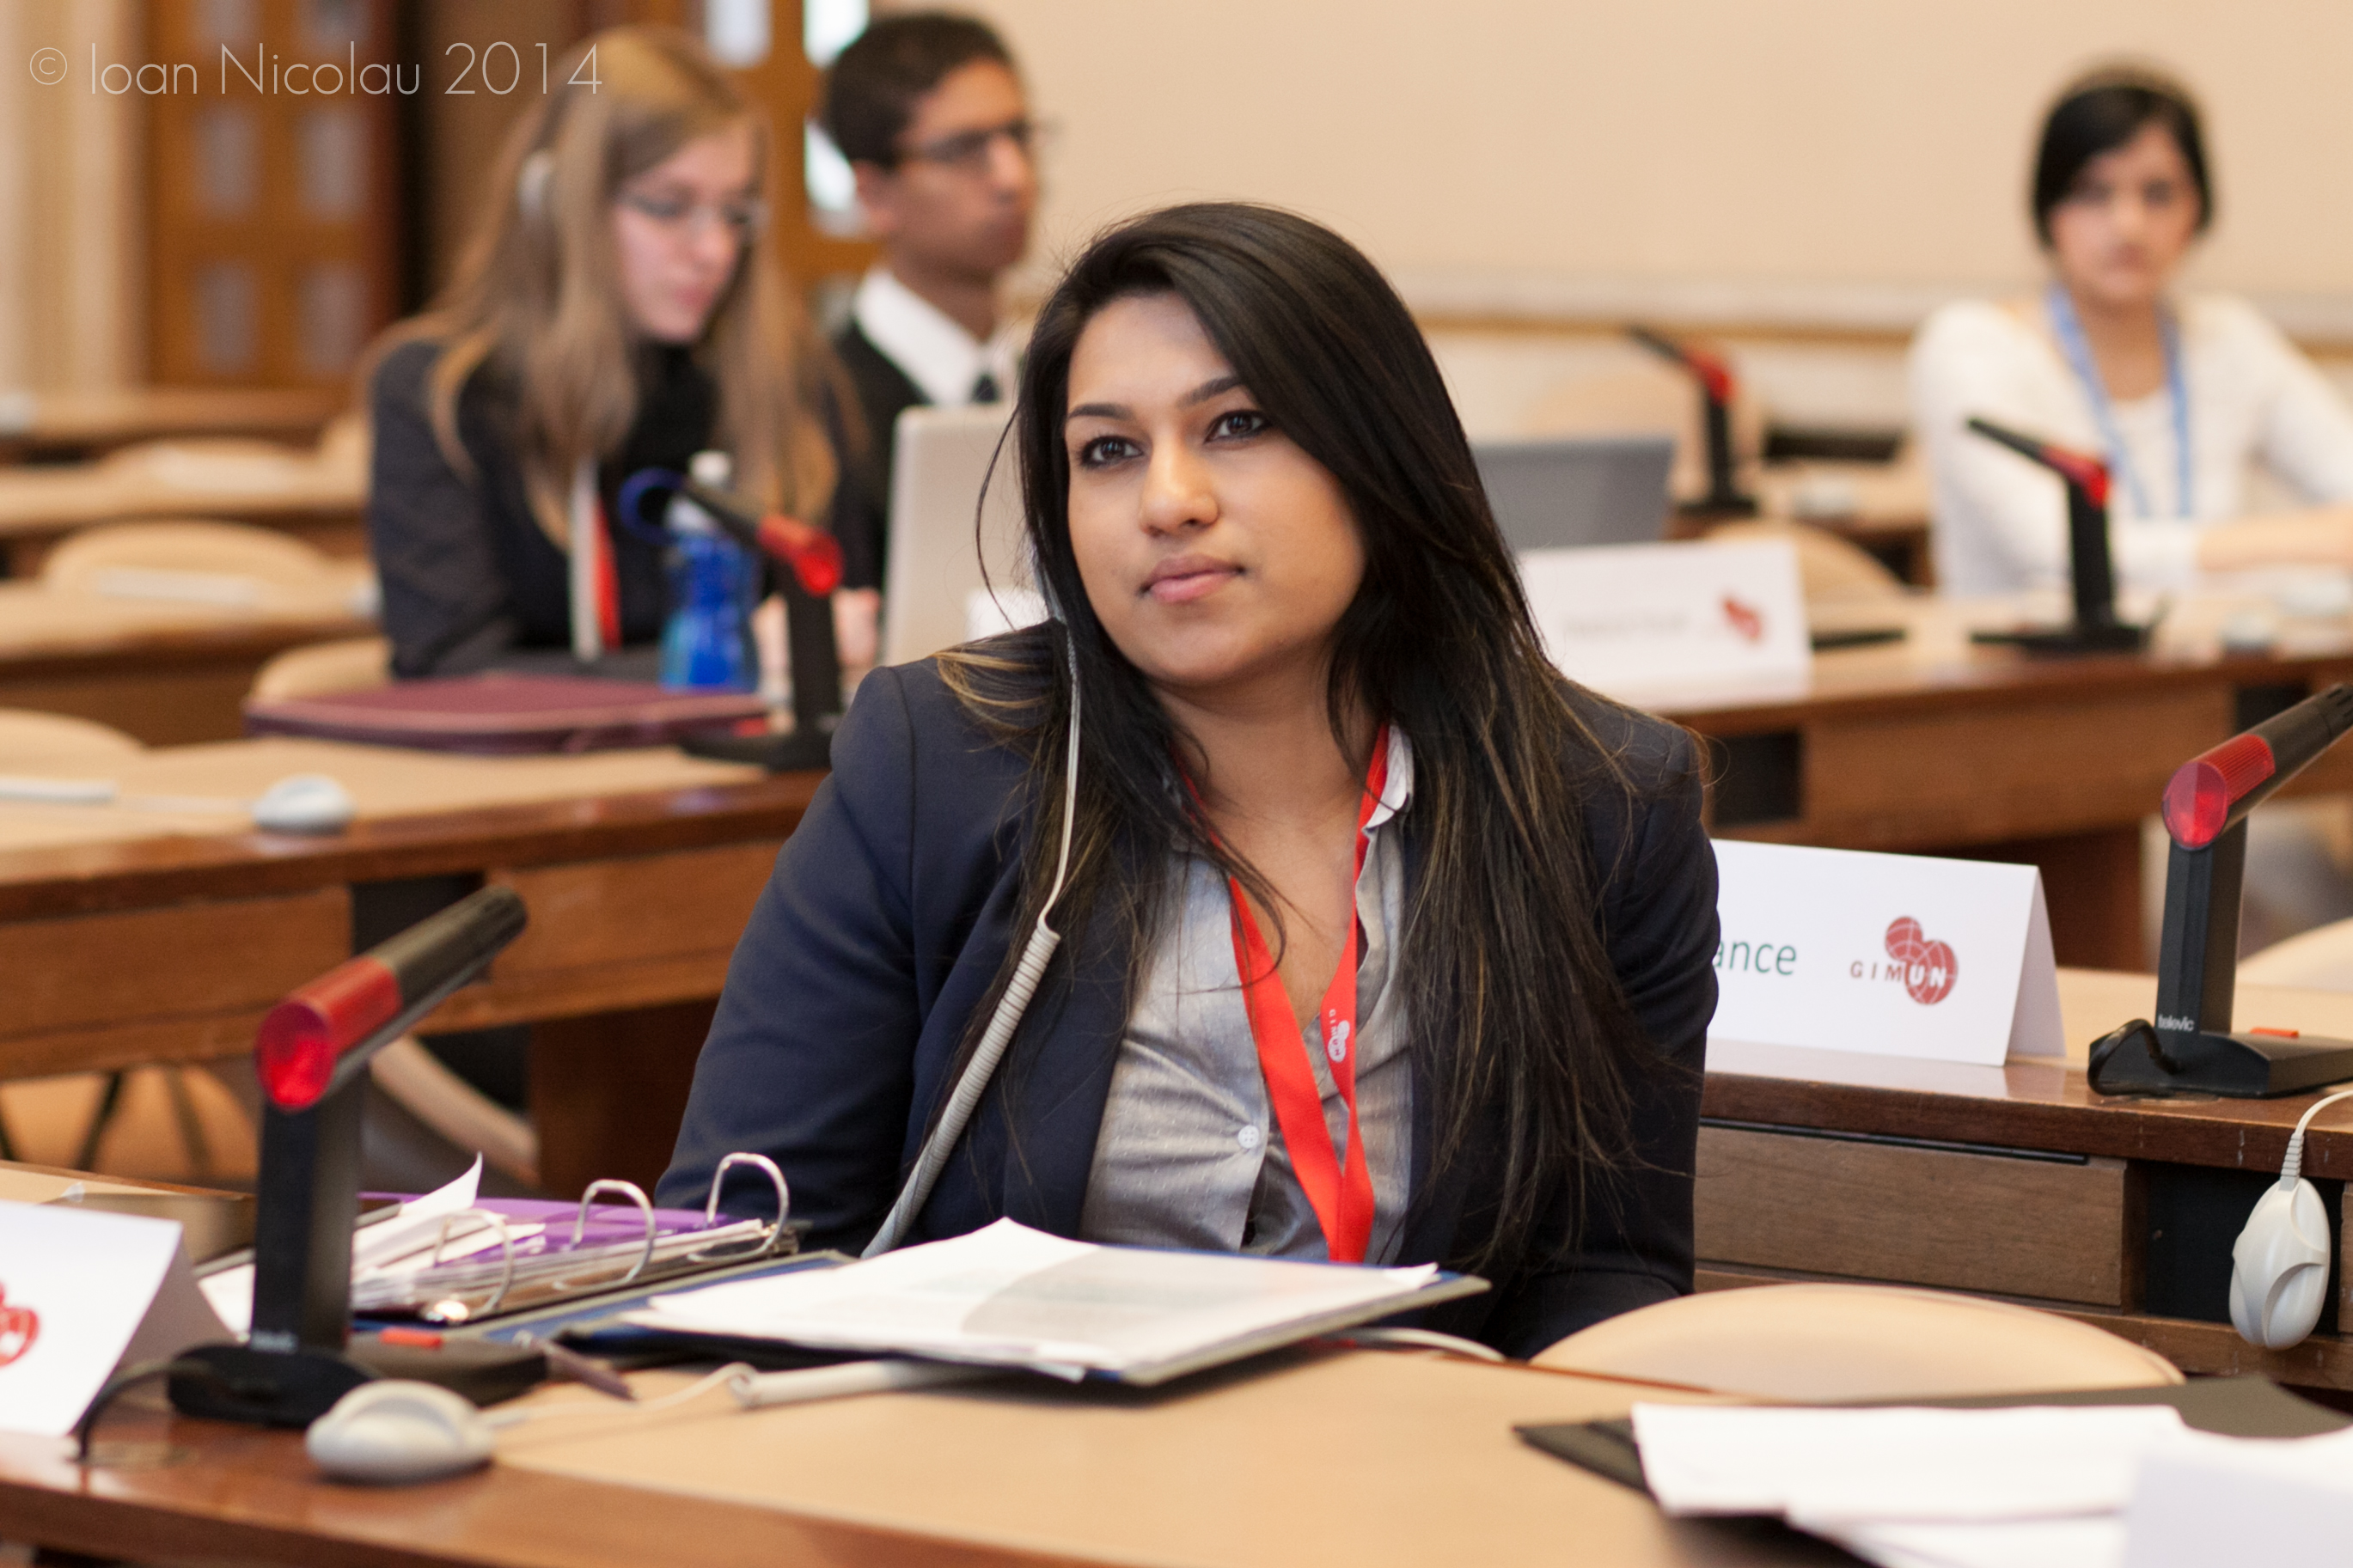 Pace University student Rumsha Zahid '15 representing Albania in a simulation of the Economic and Social Council at the 2014 Geneva International Model UN conference. Photo courtesy of GIMUN.